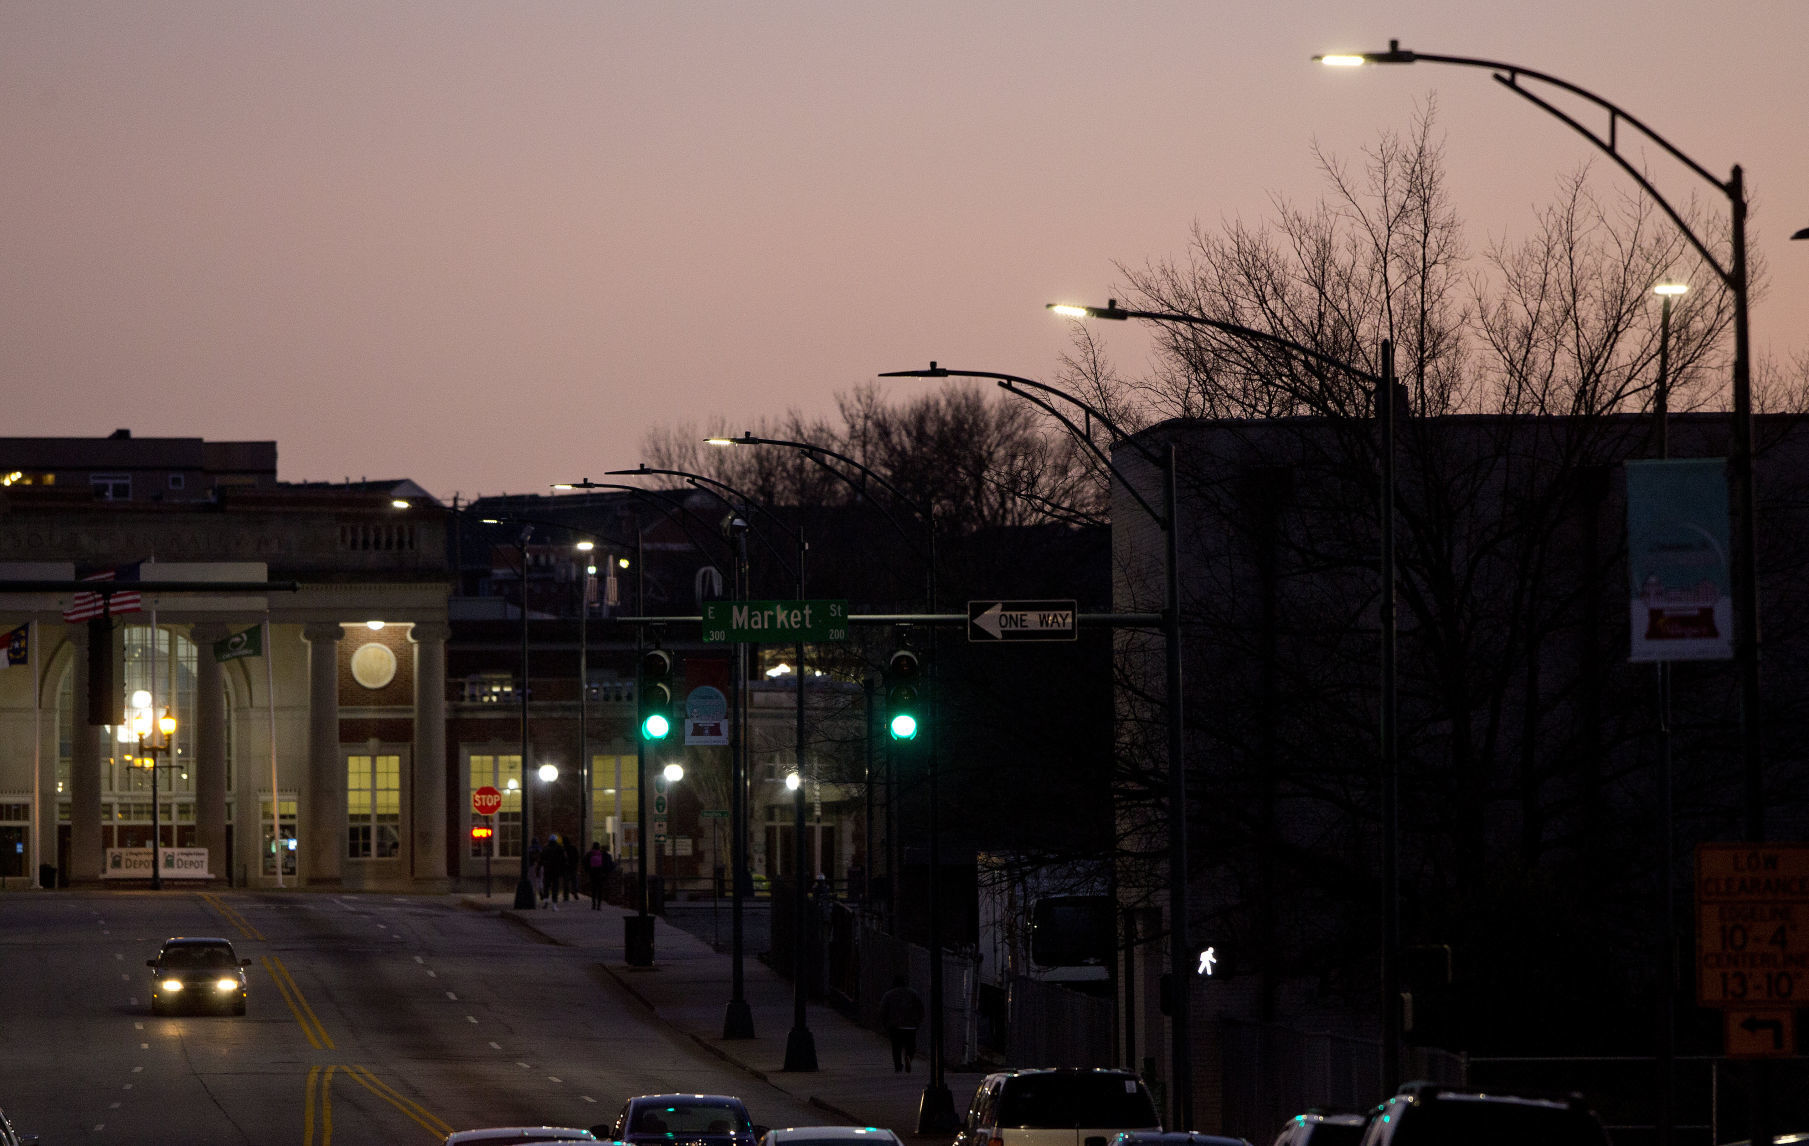 Duke Wants Greensboro To Pay More For Old Street Lights